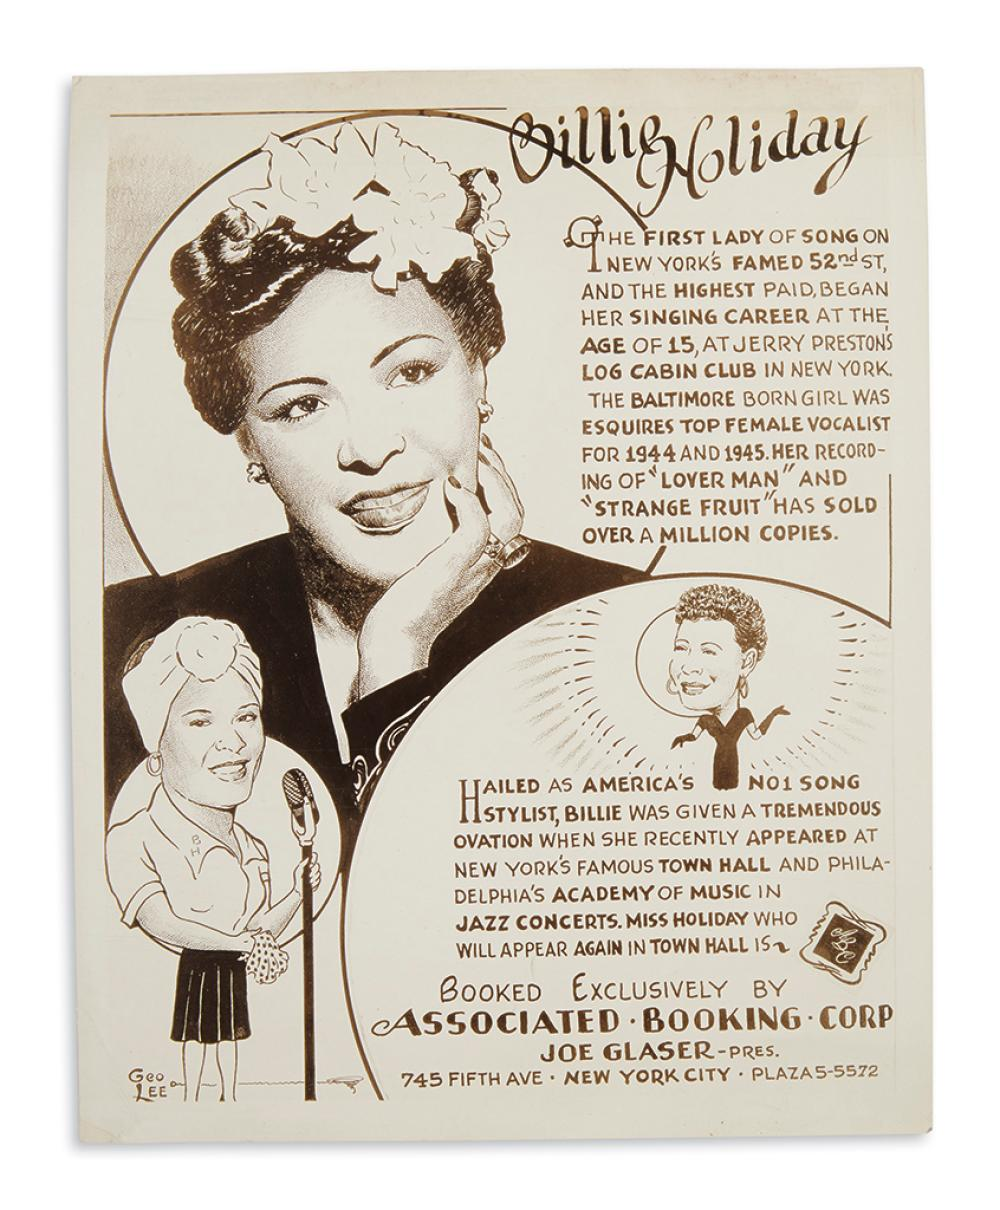 (MUSIC.) Billie Holiday, First Lady of Song on New York's Famed 52nd Street.